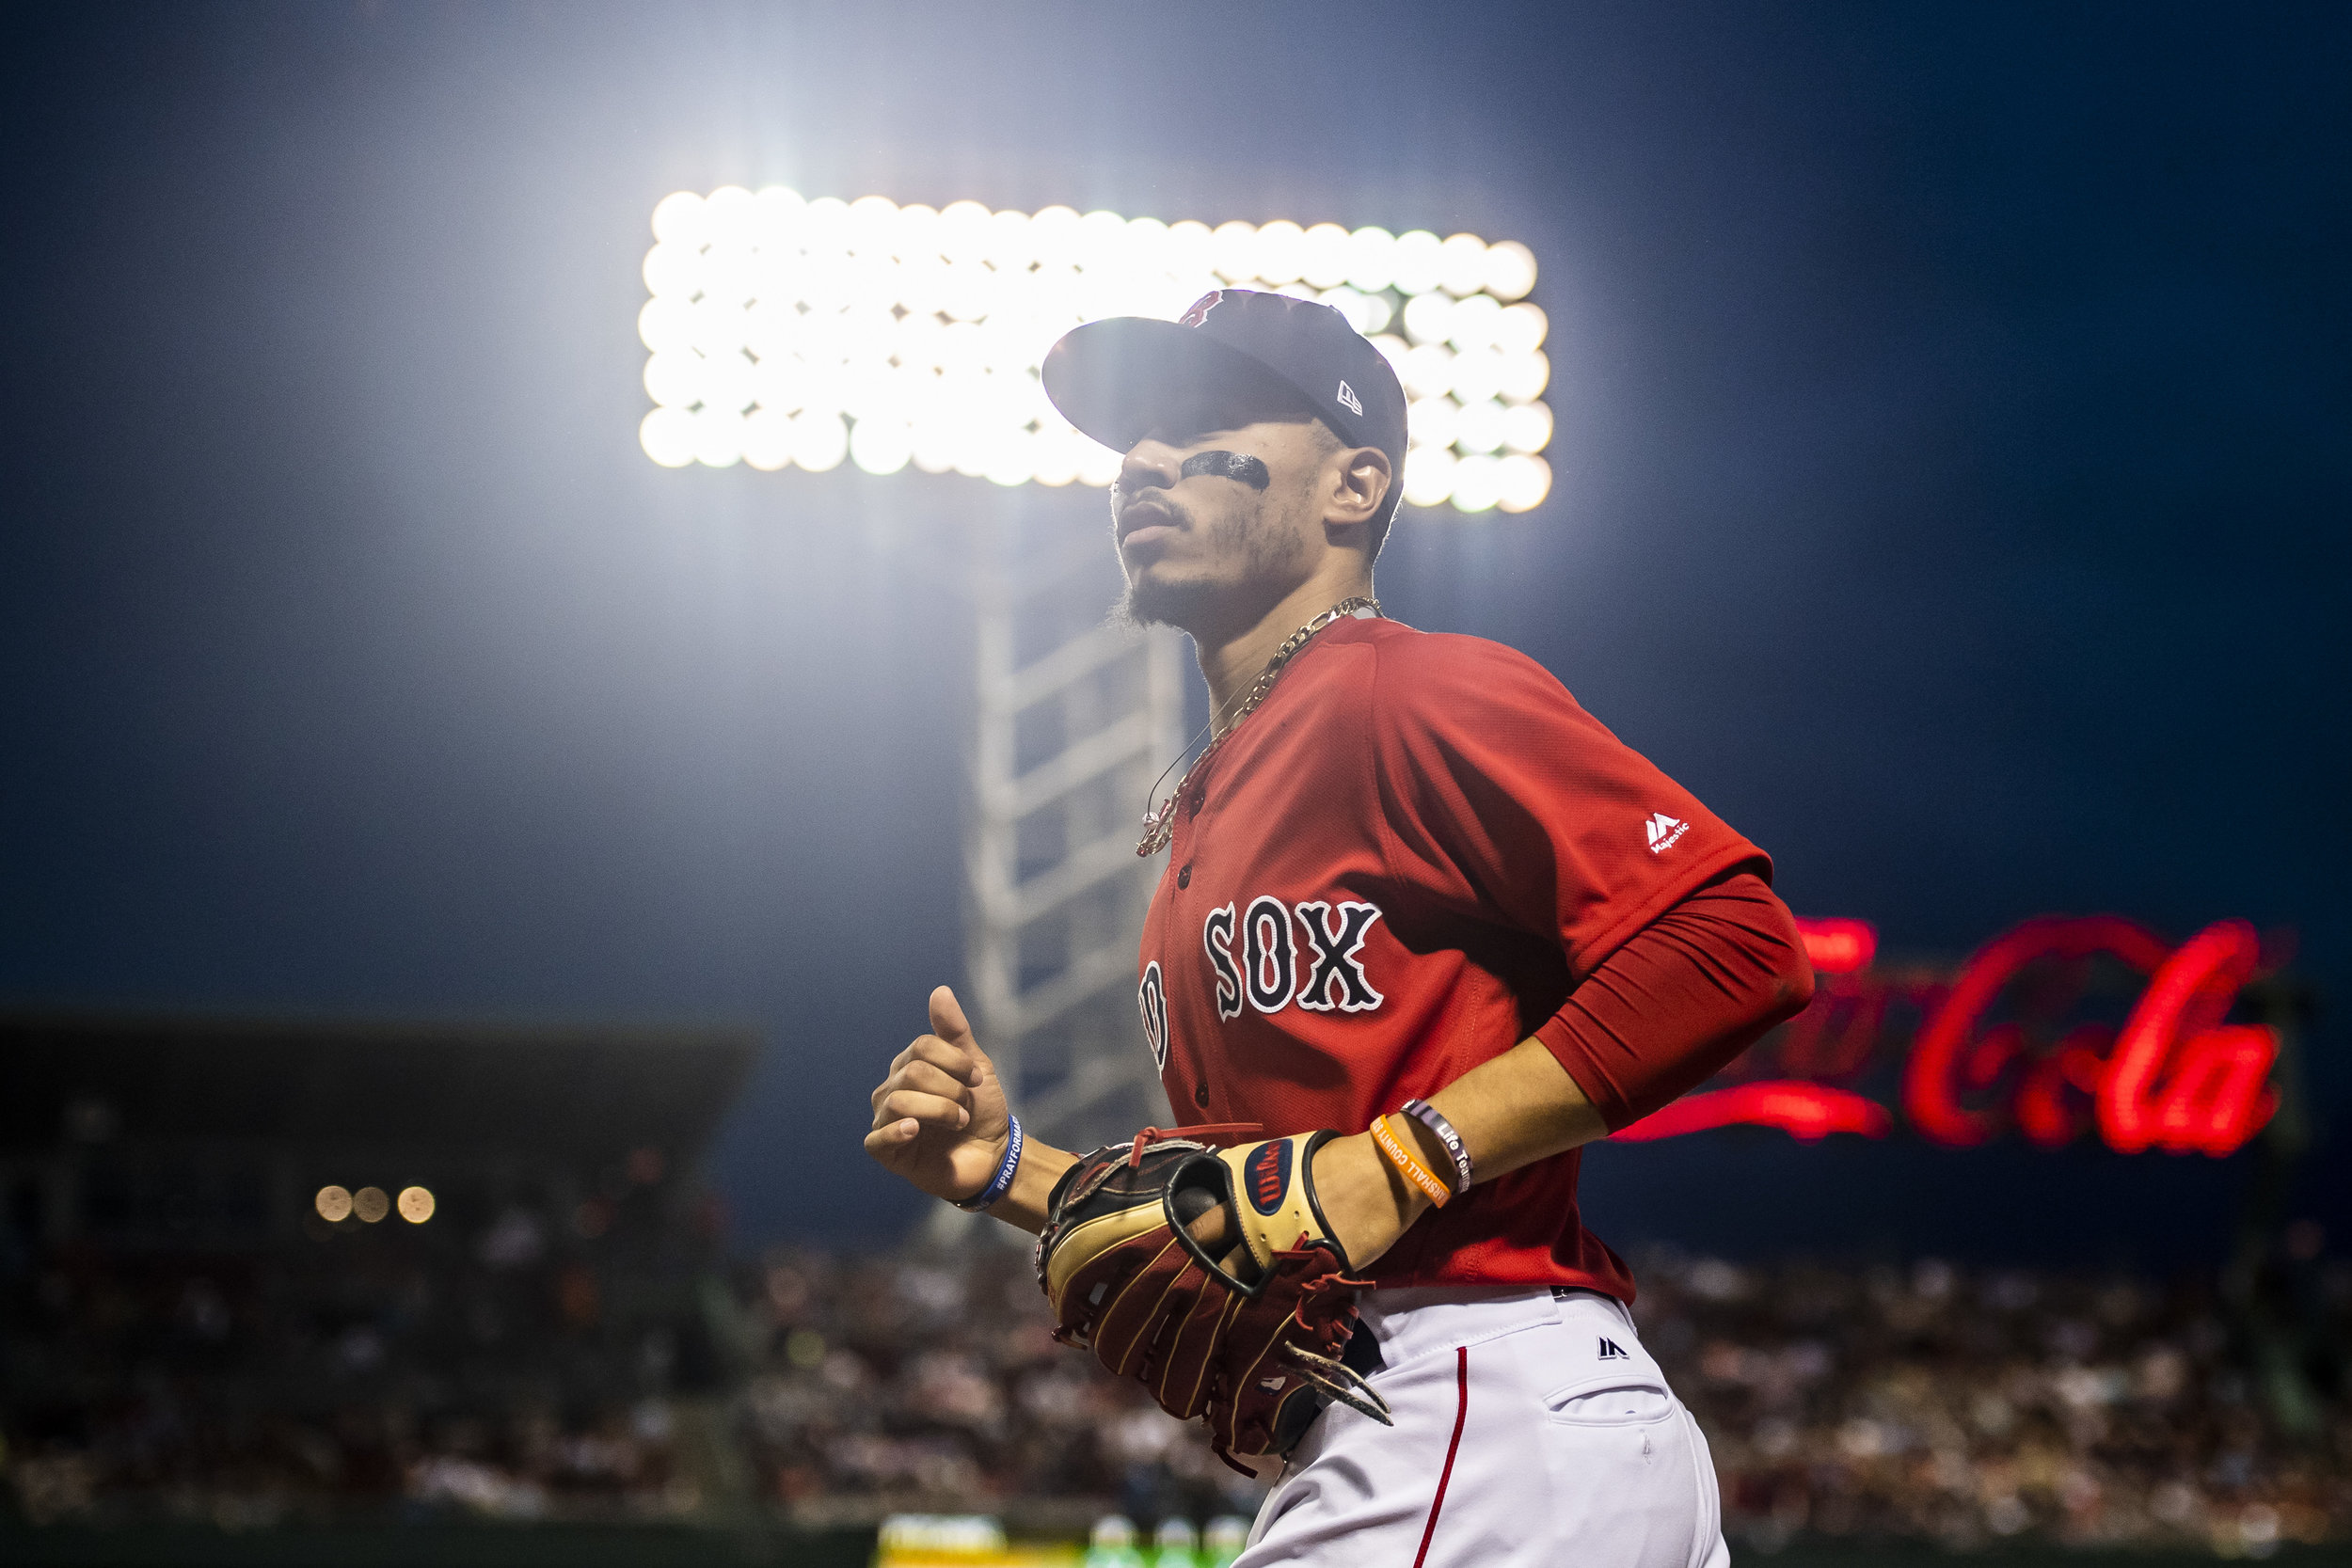 May 25, 2018, Boston, MA: Boston Red Sox outfielder Mookie Betts jogs off the field after the final out of the inning as the Boston Red Sox face the Atlanta Braves at Fenway Park in Boston, Massachusetts on Friday, May 25, 2018. (Photo by Matthew Thomas/Boston Red Sox)